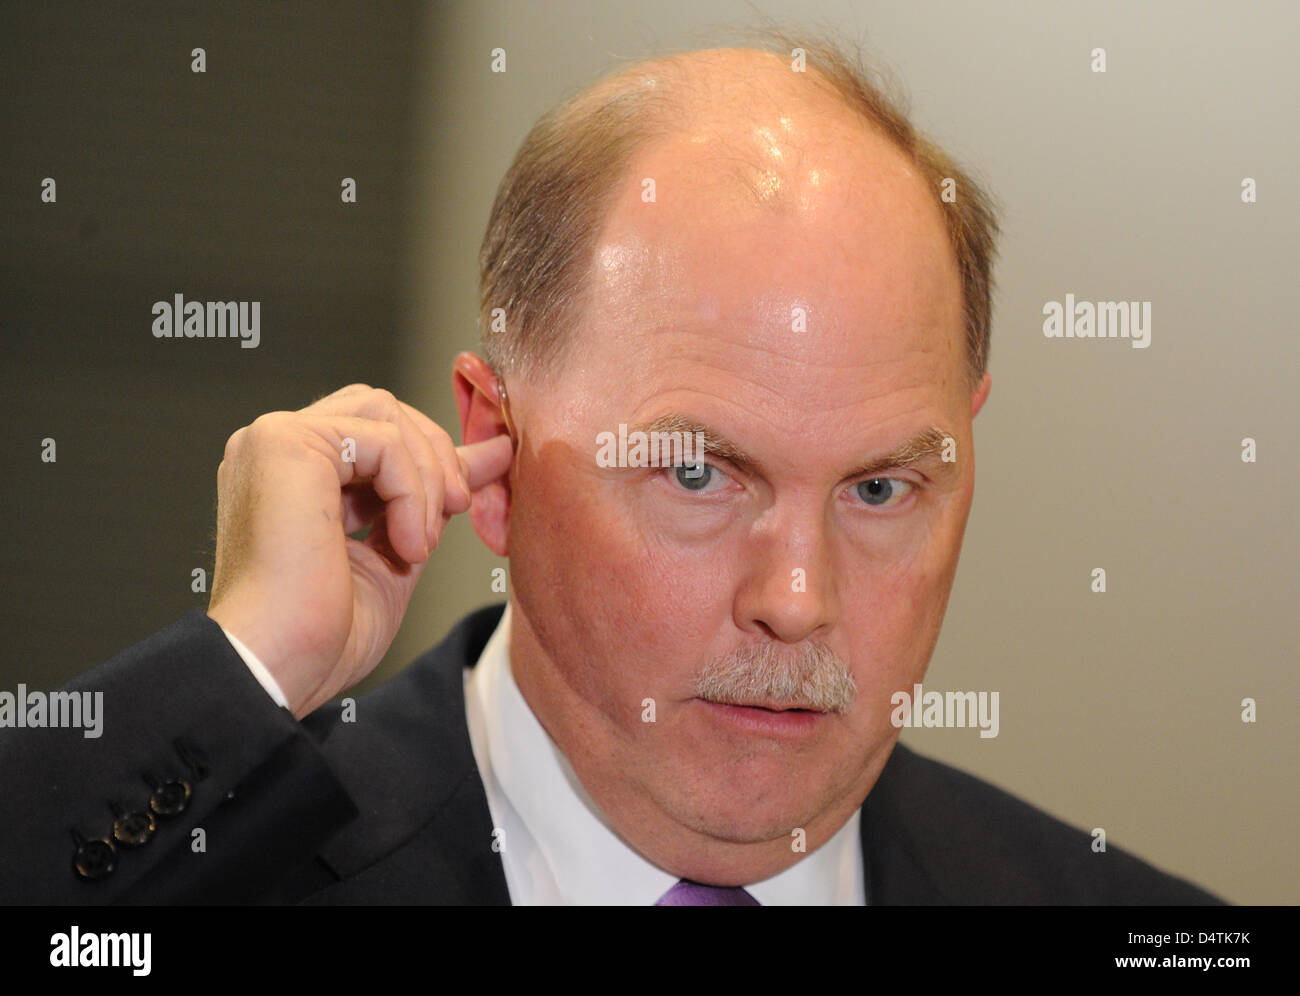 Chairman of General Motors (GM) Fritz Henderson prepares for an interview at the Opel factory in Ruesselsheim, Germany, - Stock Image